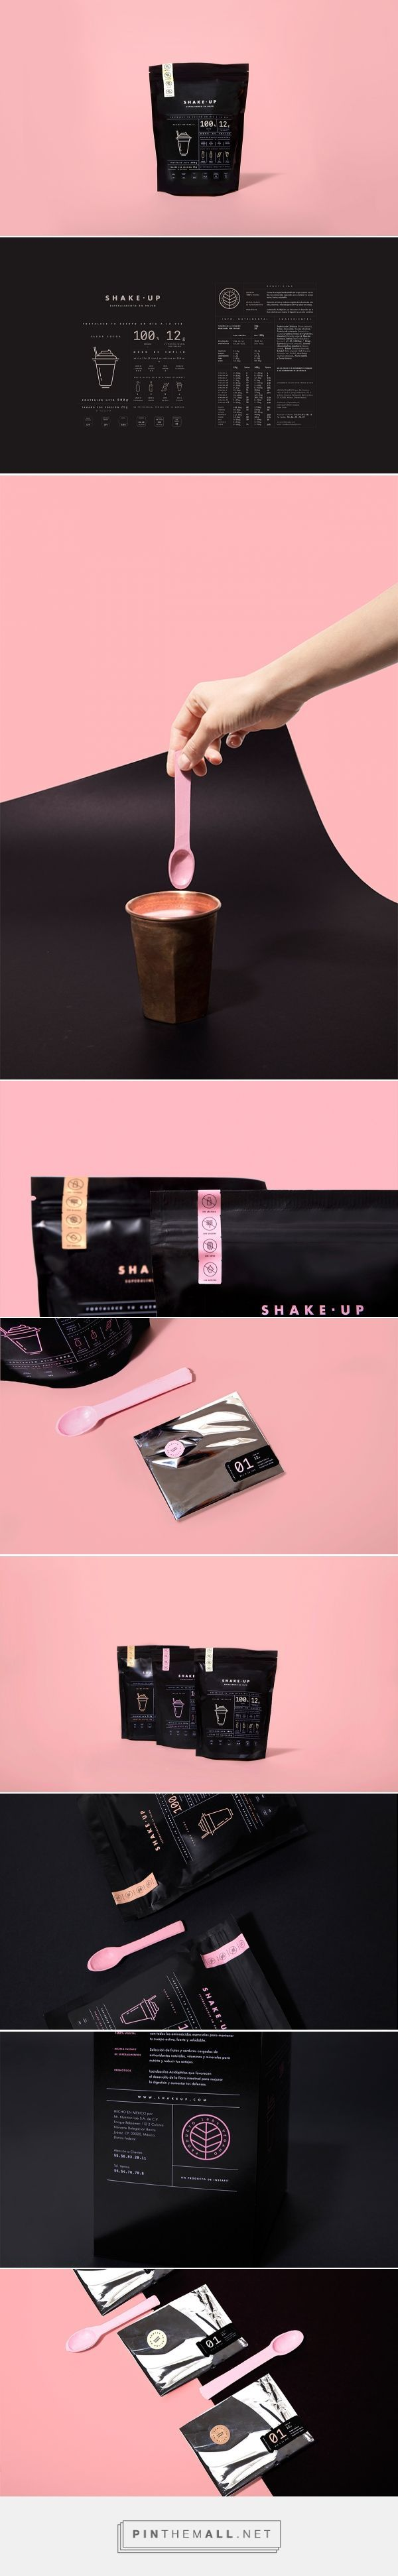 Art direction, branding and packaging for Shake Up on Behance by Futura, Mexico City, MX curated by Packaging Diva PD. A vegan super food on powder special for those who don't have the time to have breakfast everyday.